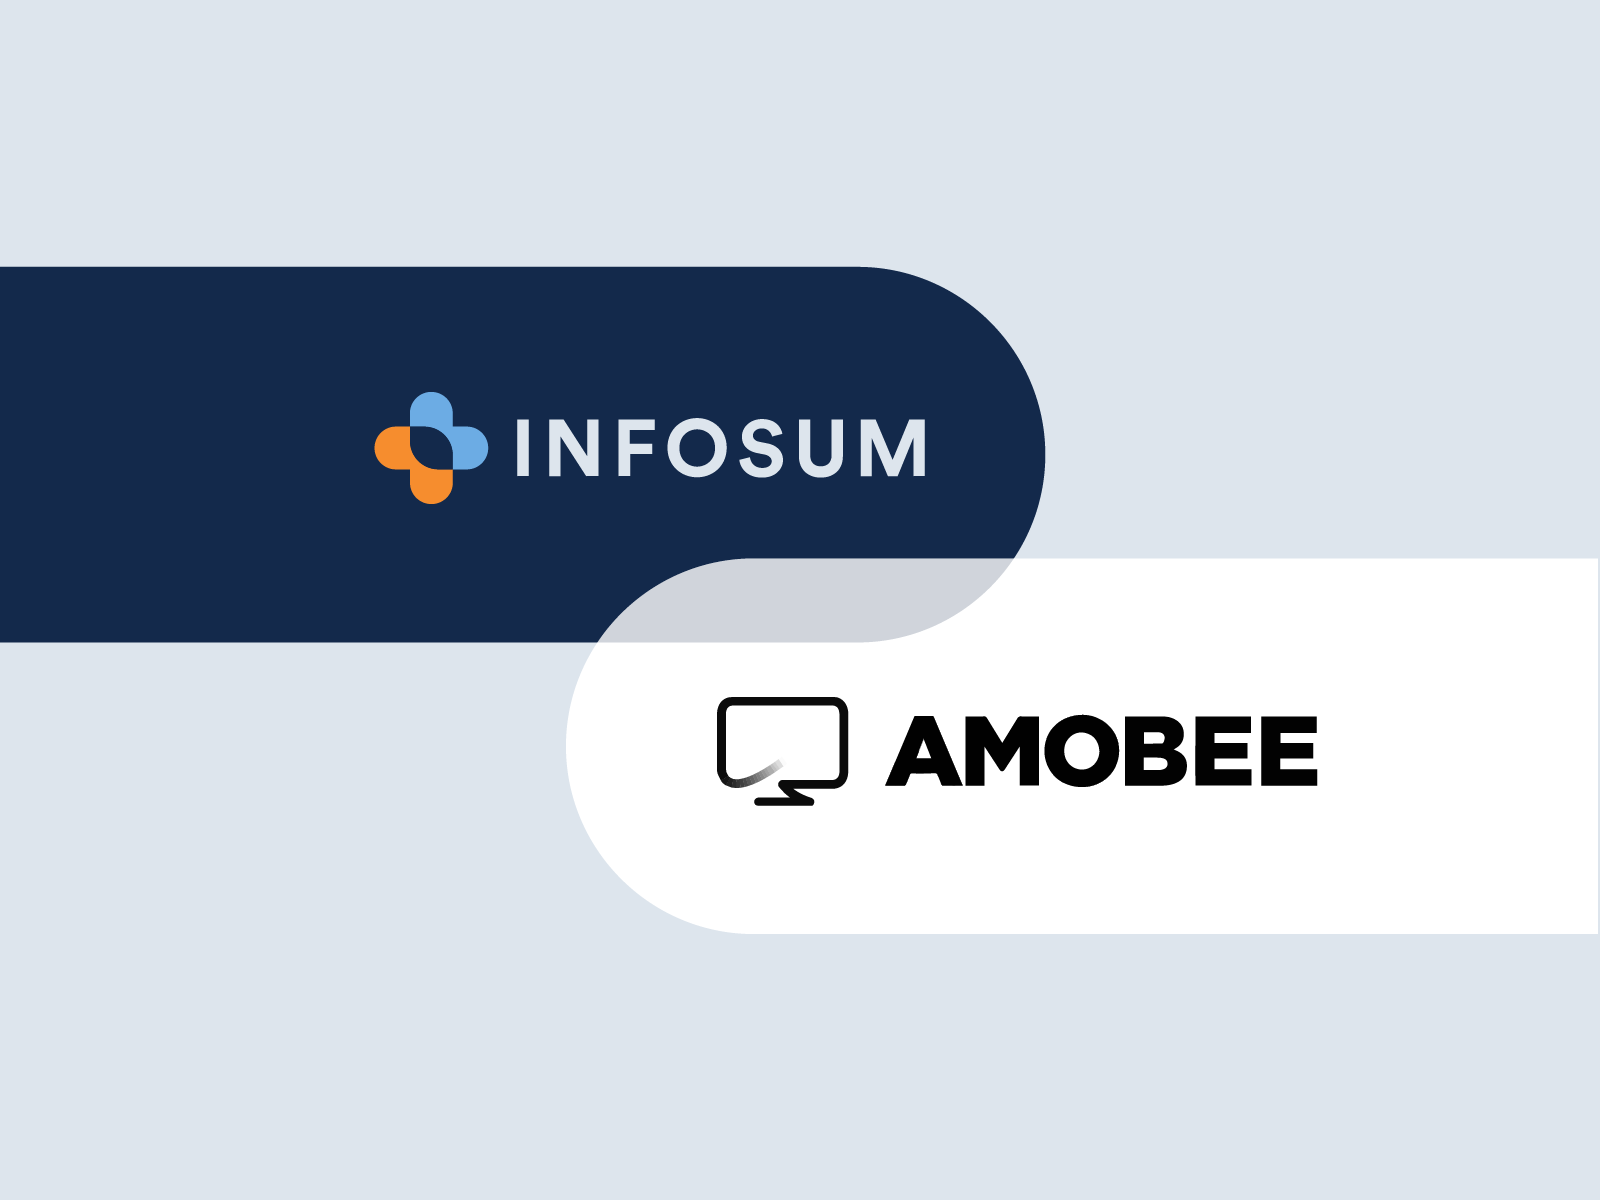 Amobee partners with InfoSum on alternative identity solution for advertisers and media owners